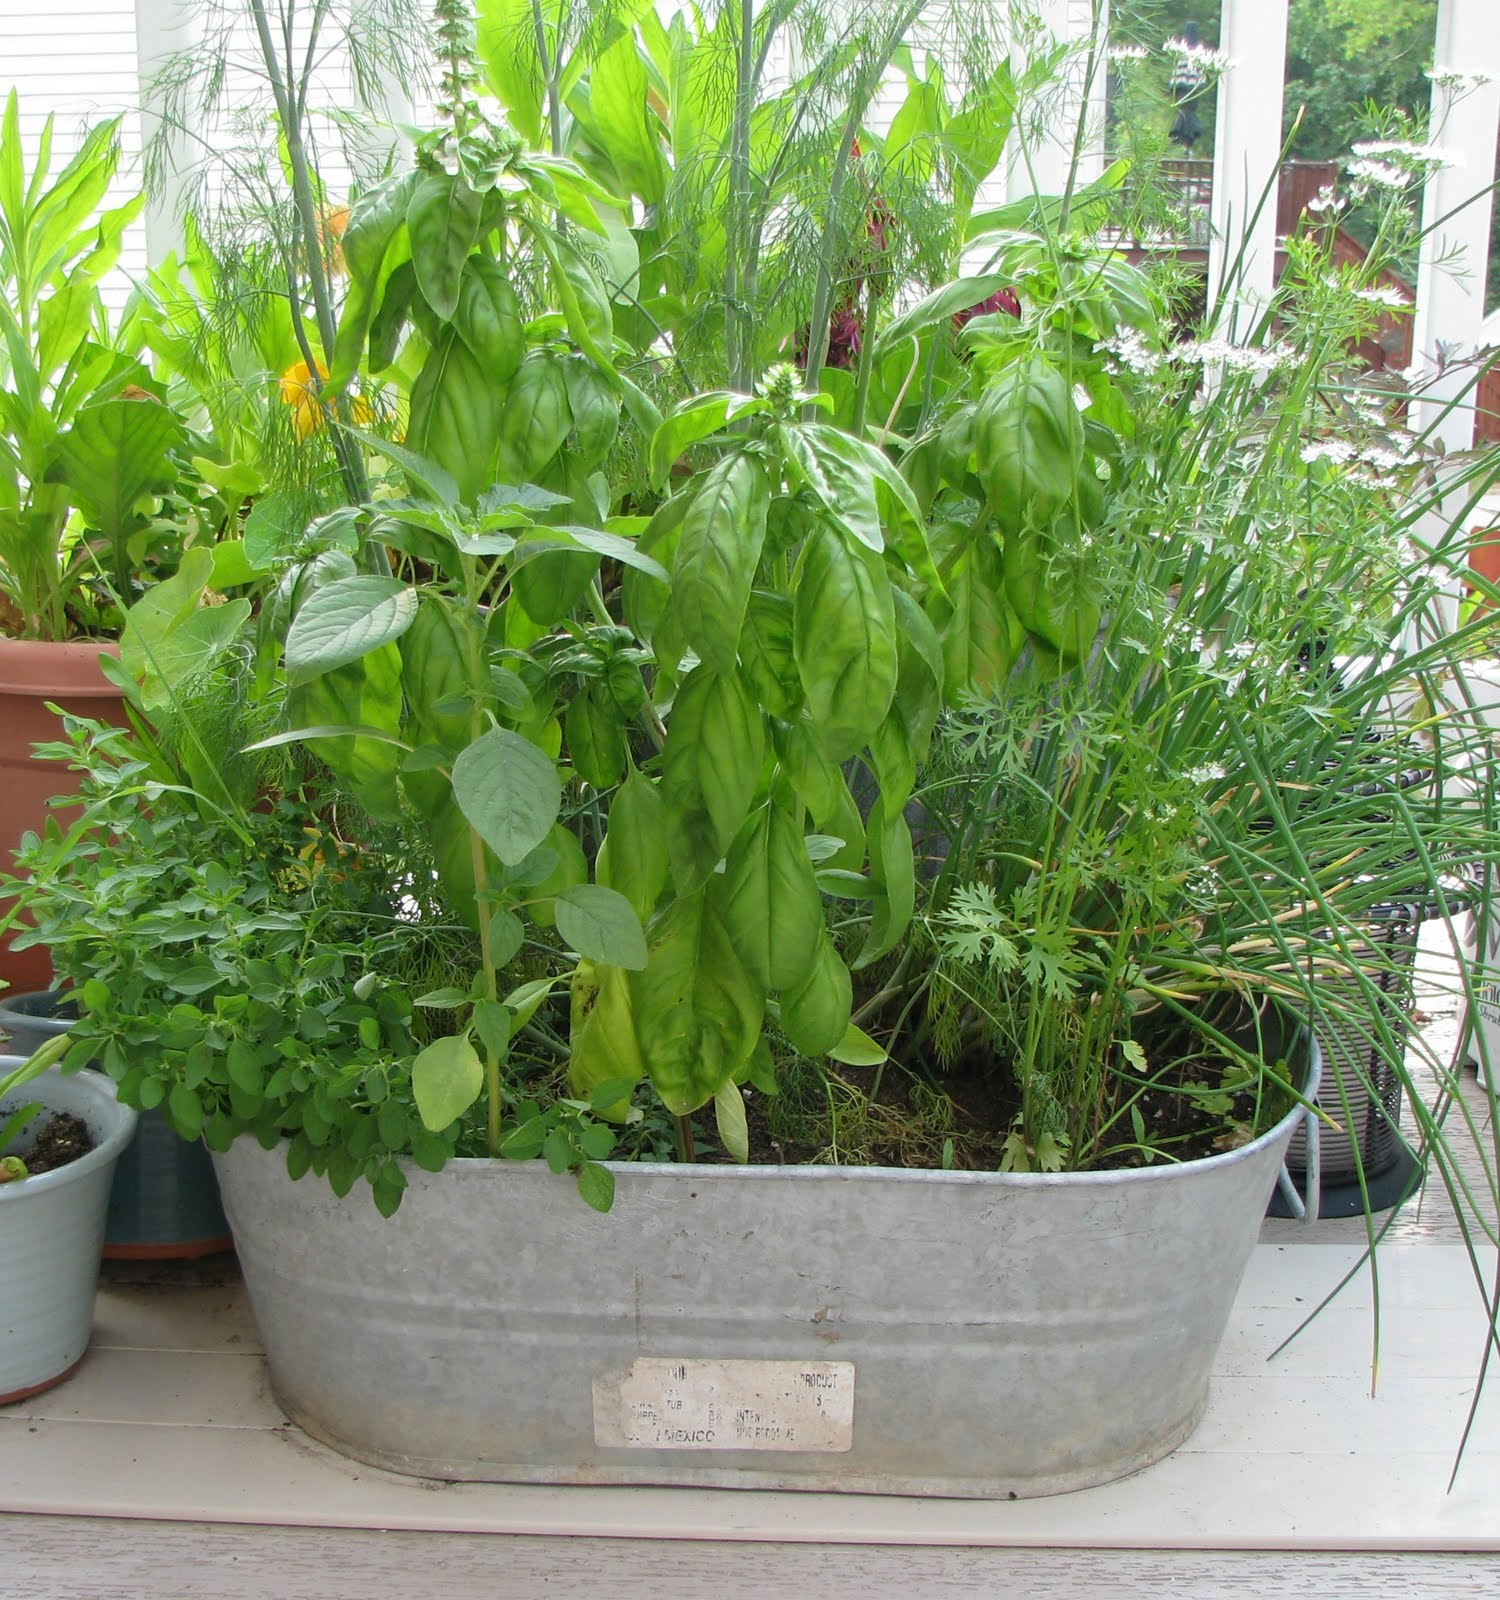 Herb Planter Pot Musings From Kim K A Garden Tour And Corn Avocado Salad